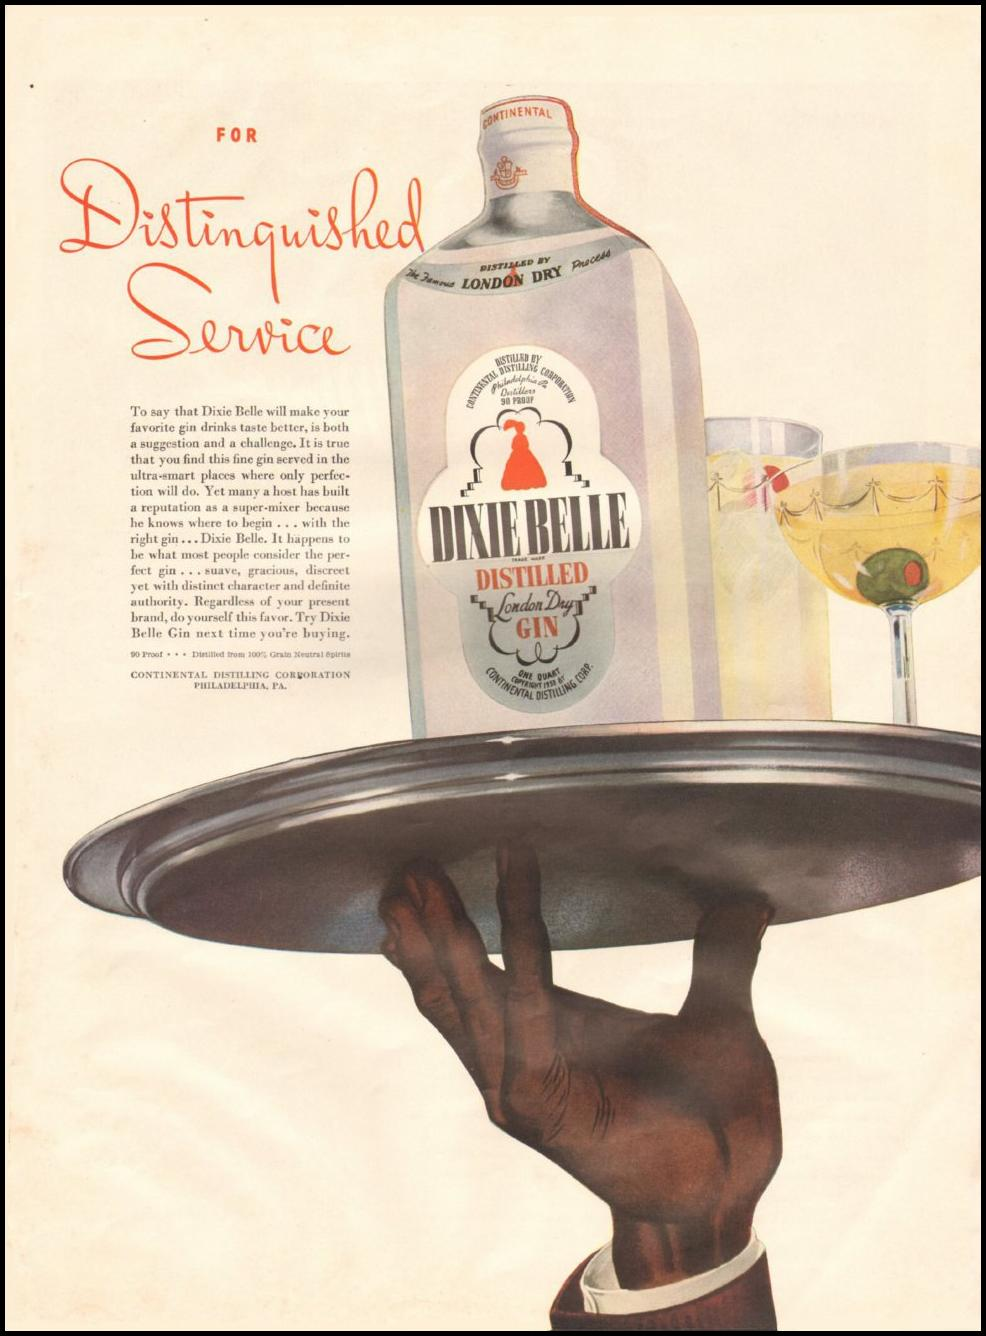 DIXIE BELLE DISTILLED GIN LIFE 06/22/1942